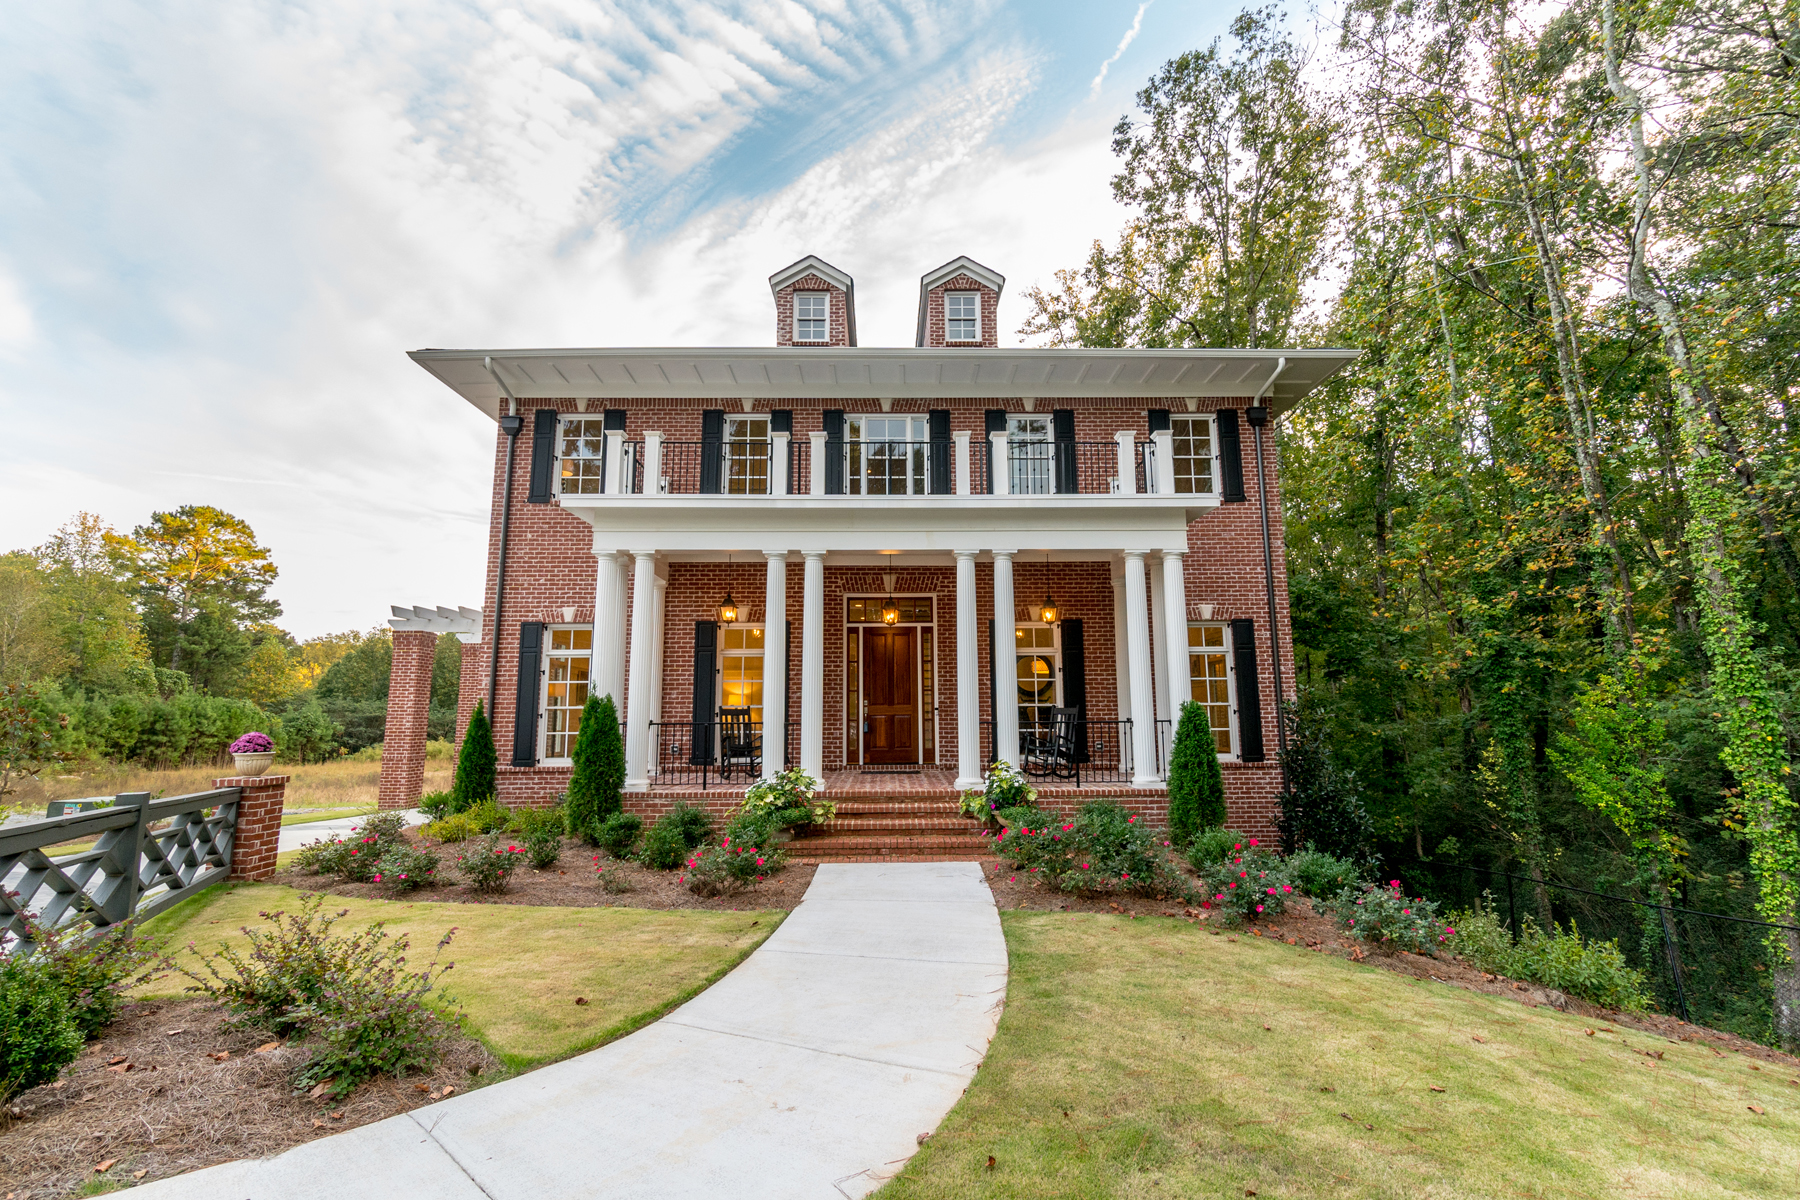 Casa Unifamiliar por un Venta en Beautiful Georgian Revival In The Magnolias 5140 Timber Ridge Road, Marietta, Georgia, 30068 Estados Unidos